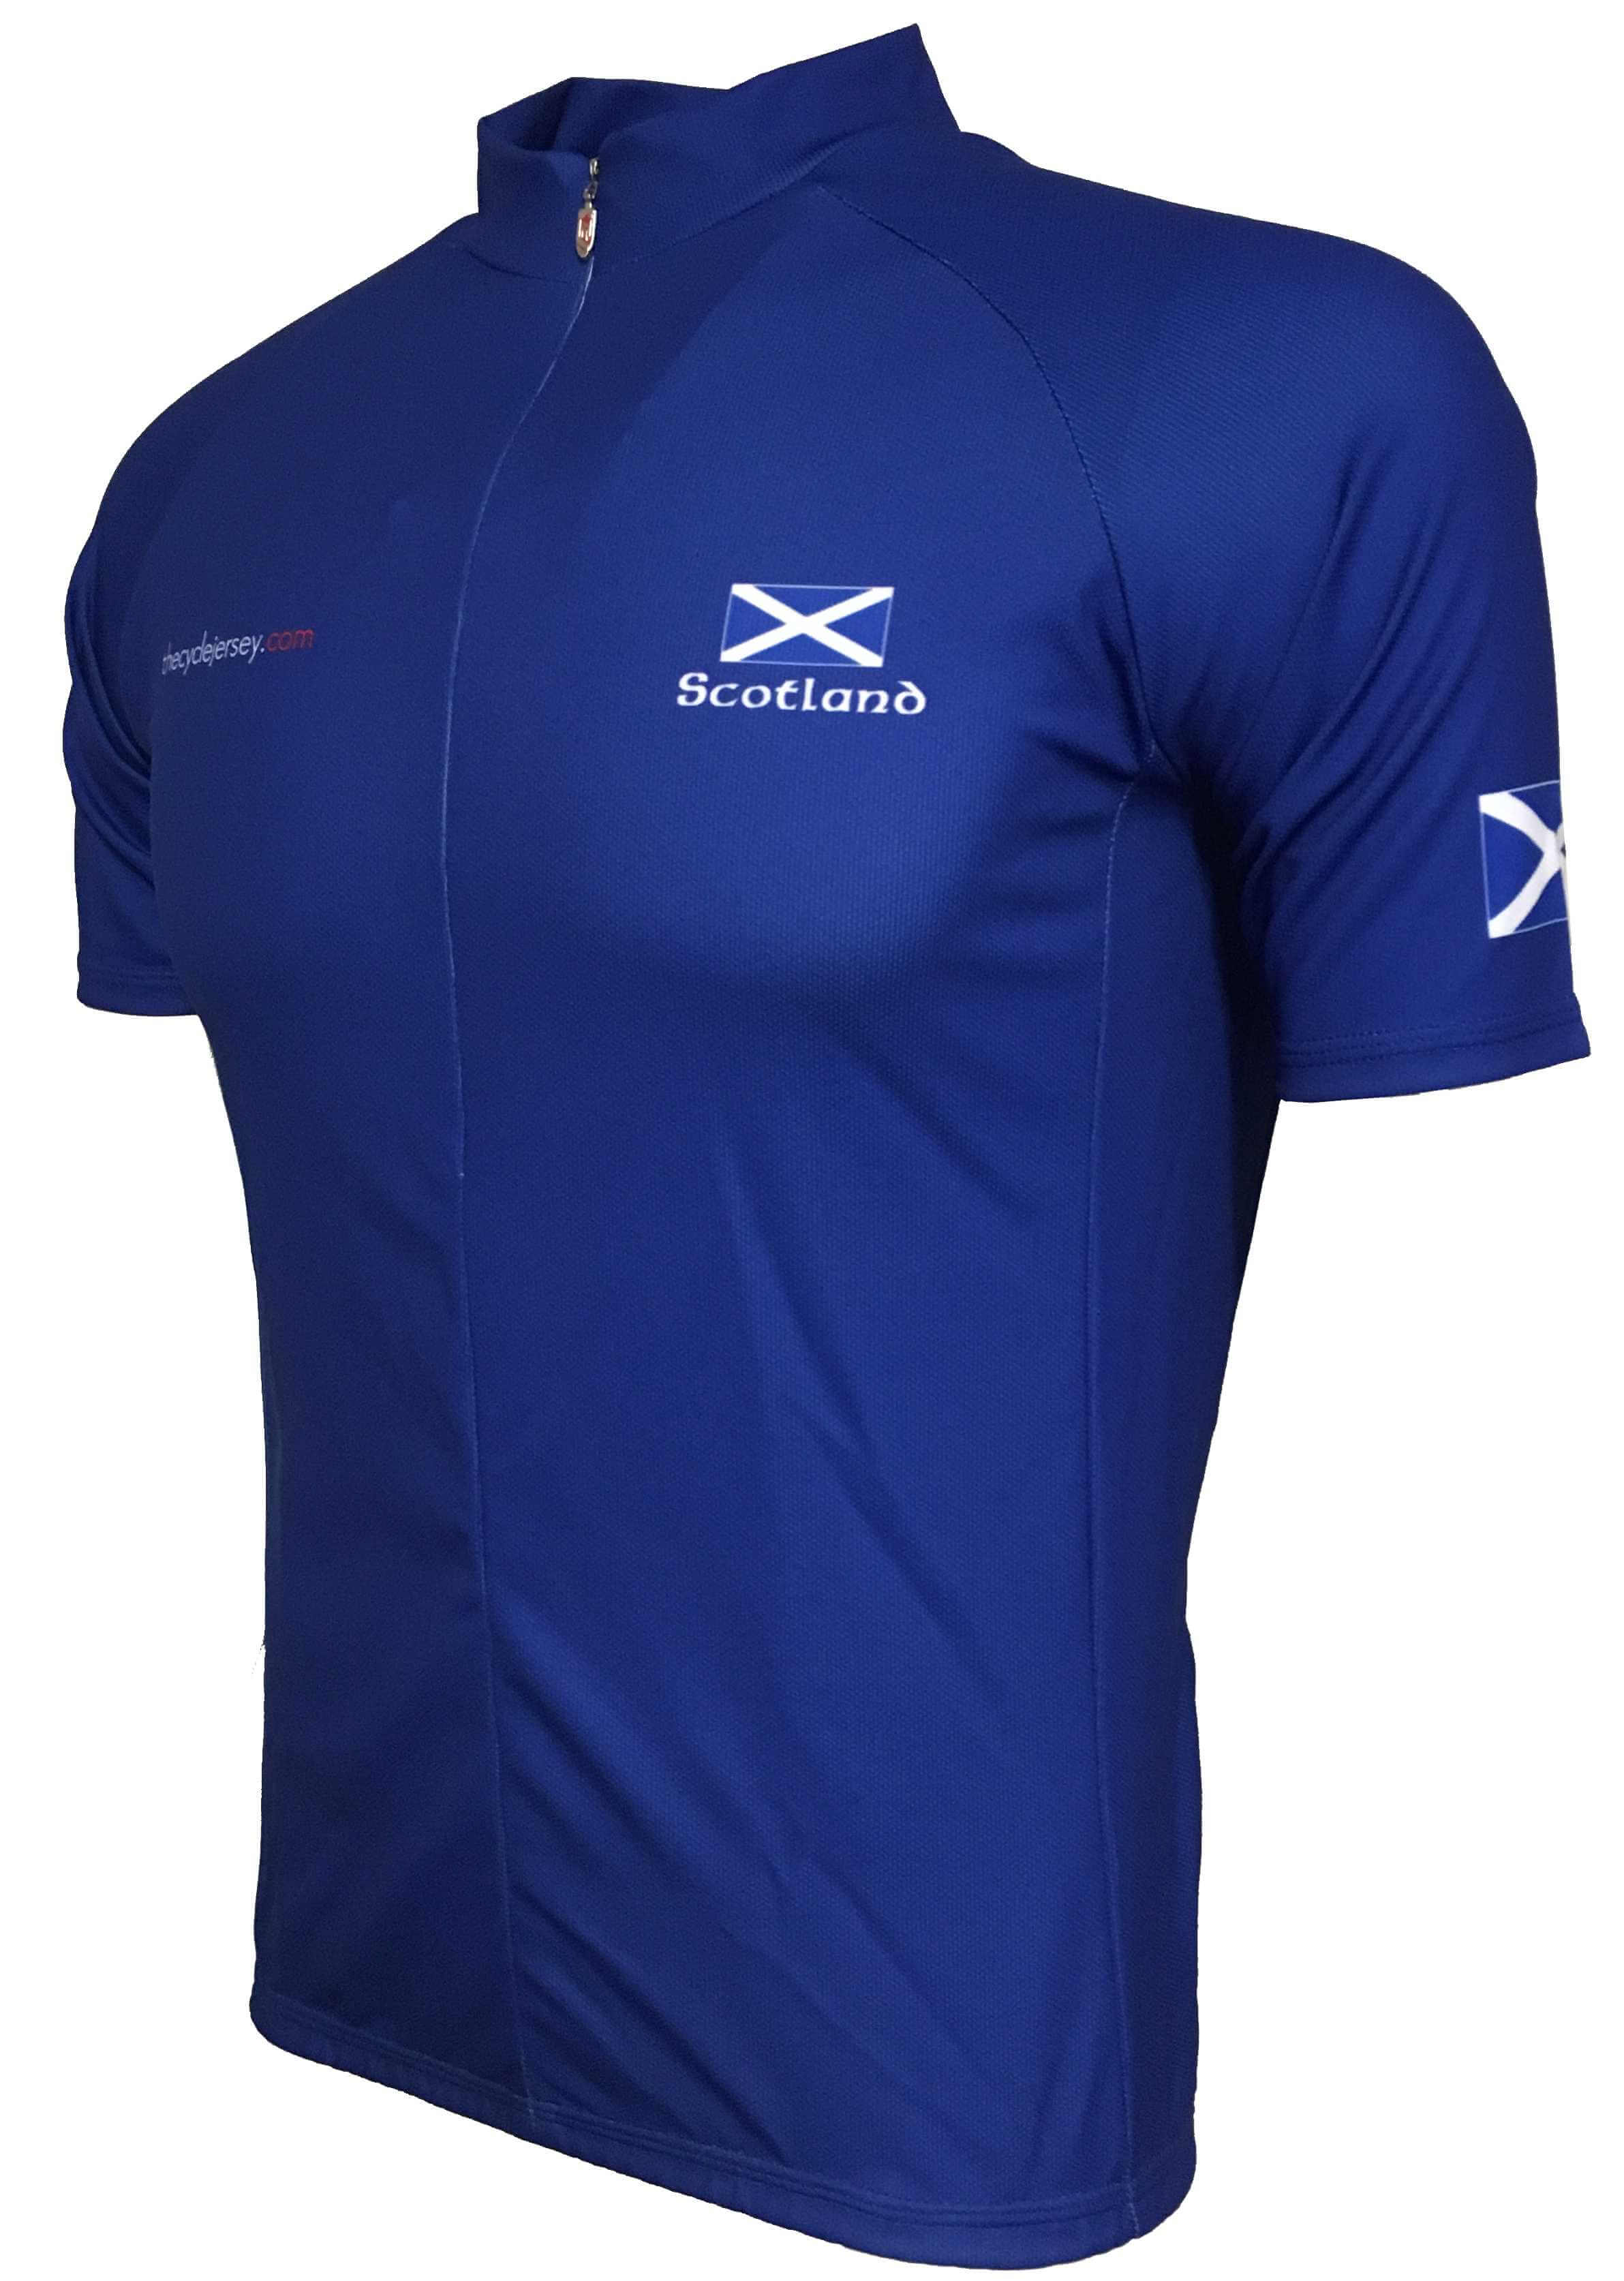 Scotland Original Road Cycle Jersey Front